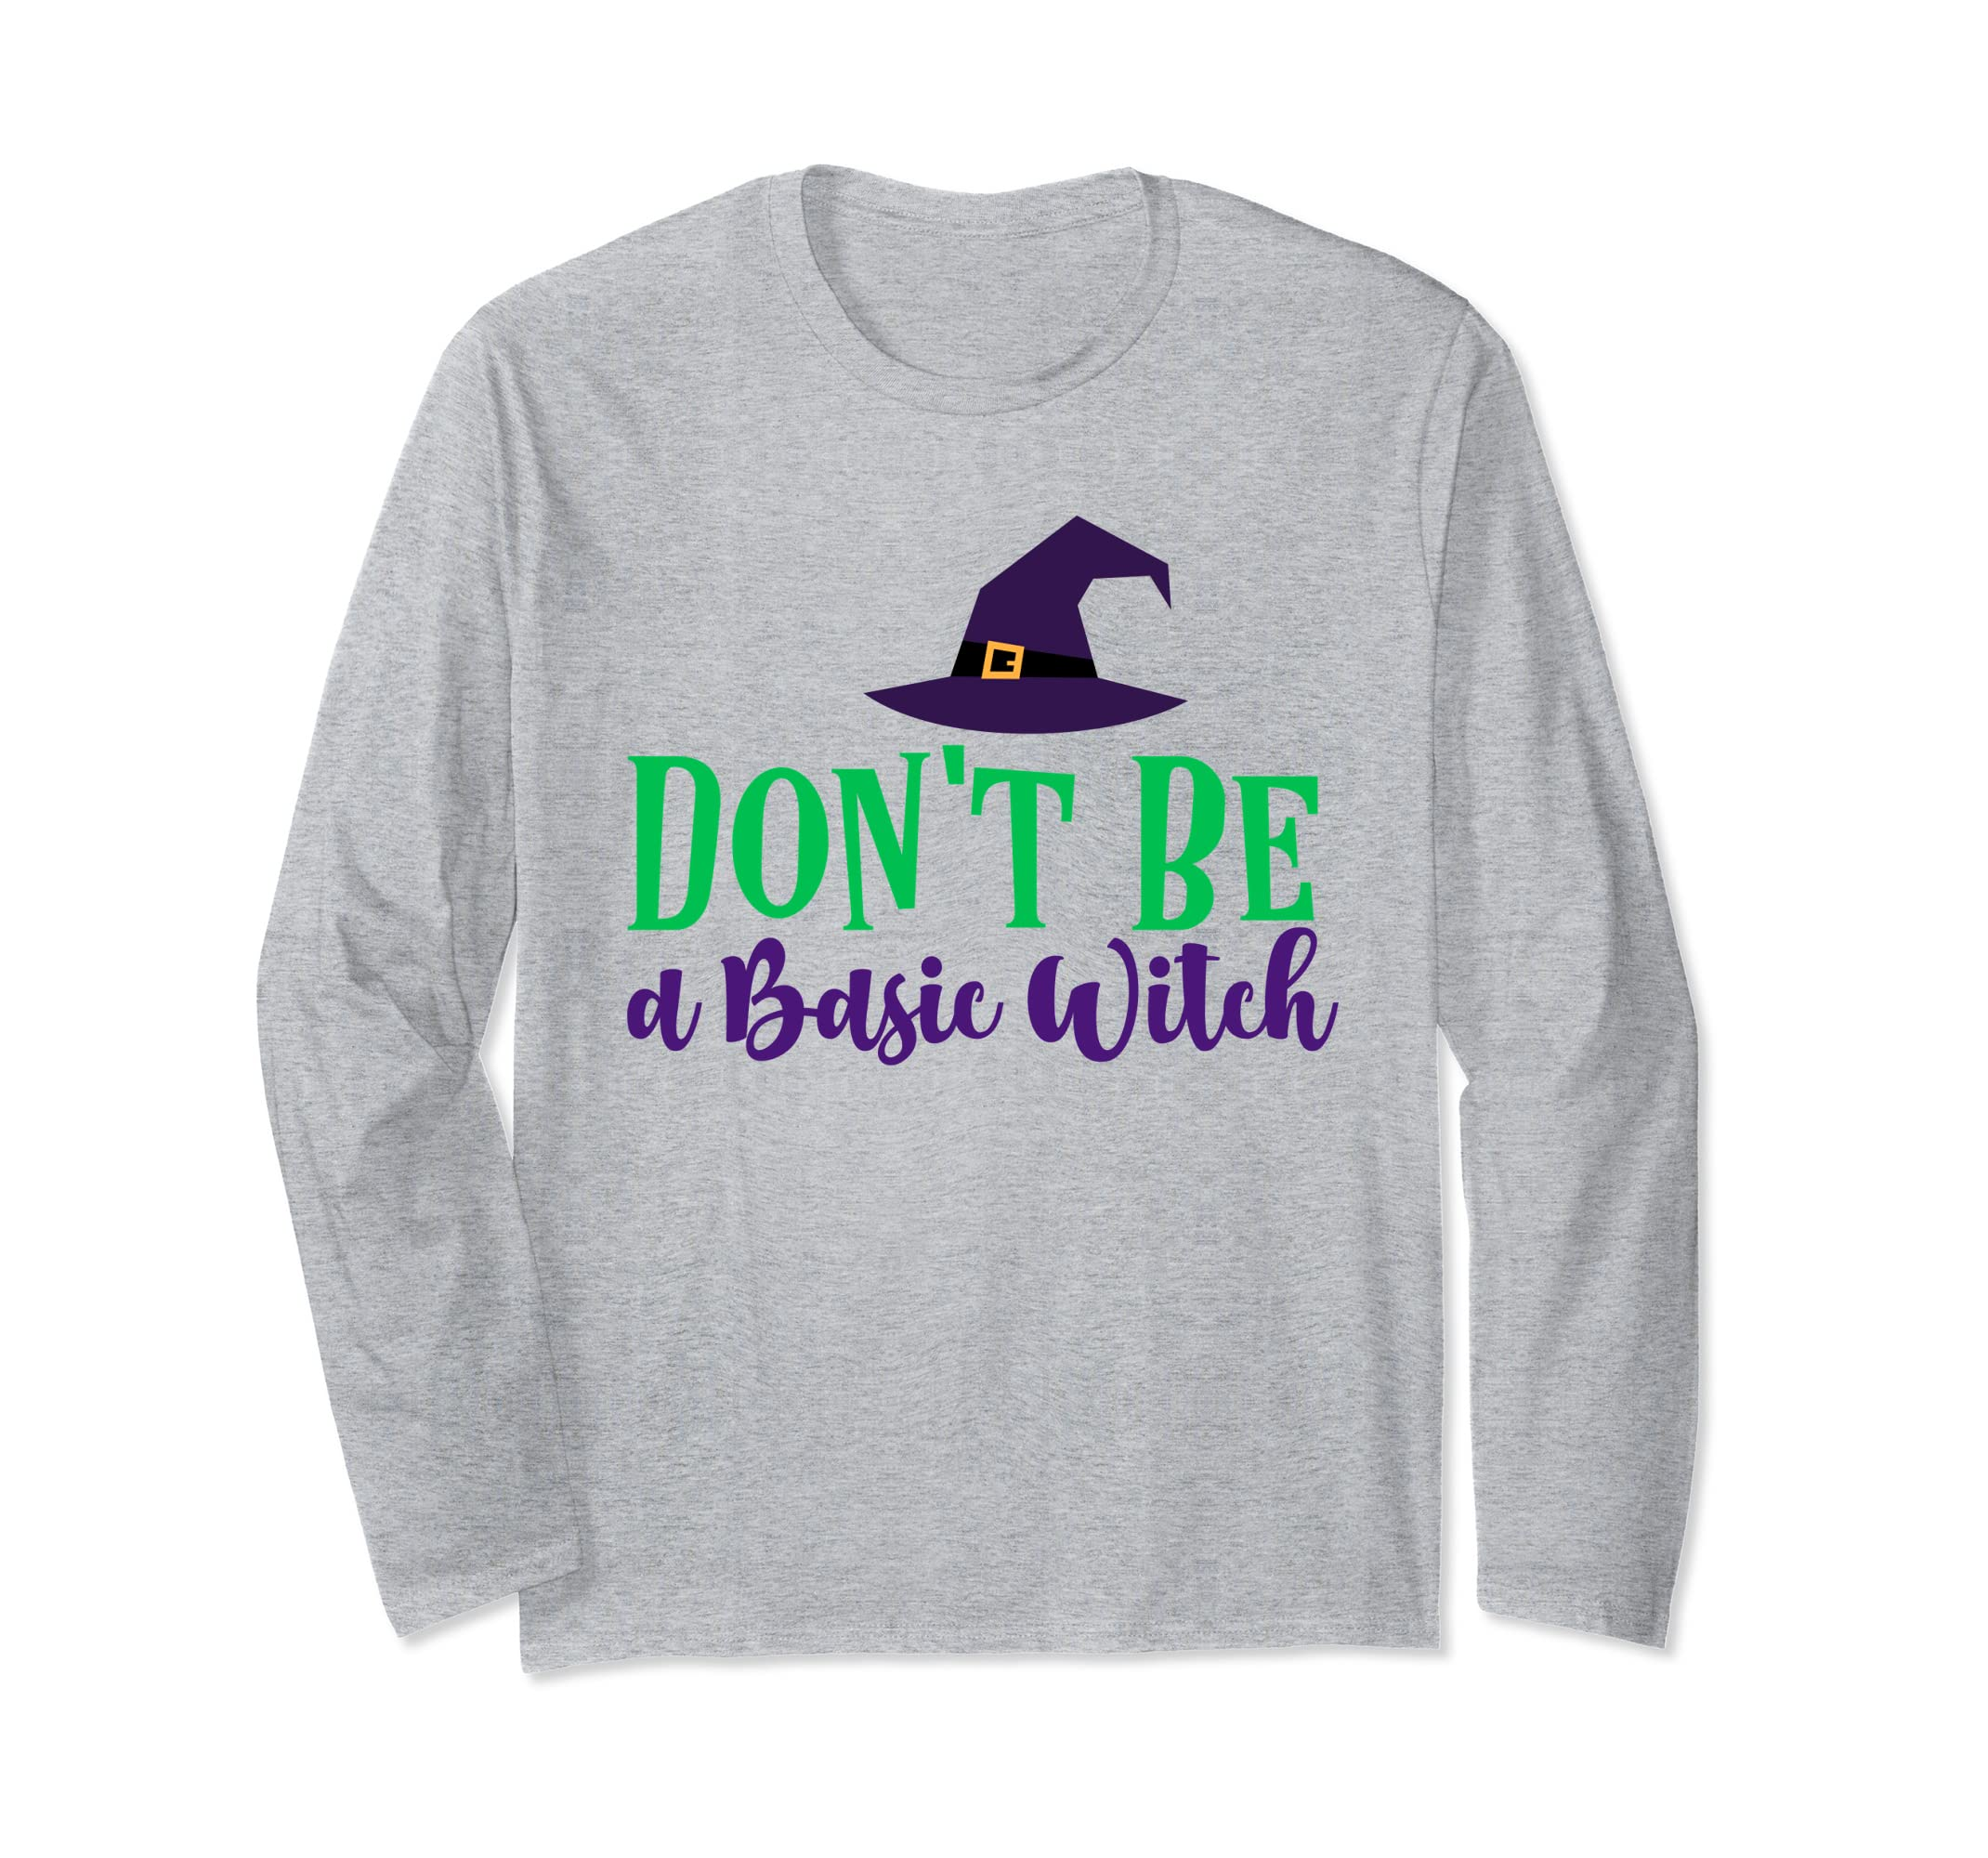 Don't Be a Basic Witch Halloween Long Sleeve Shirt for Women-Rose